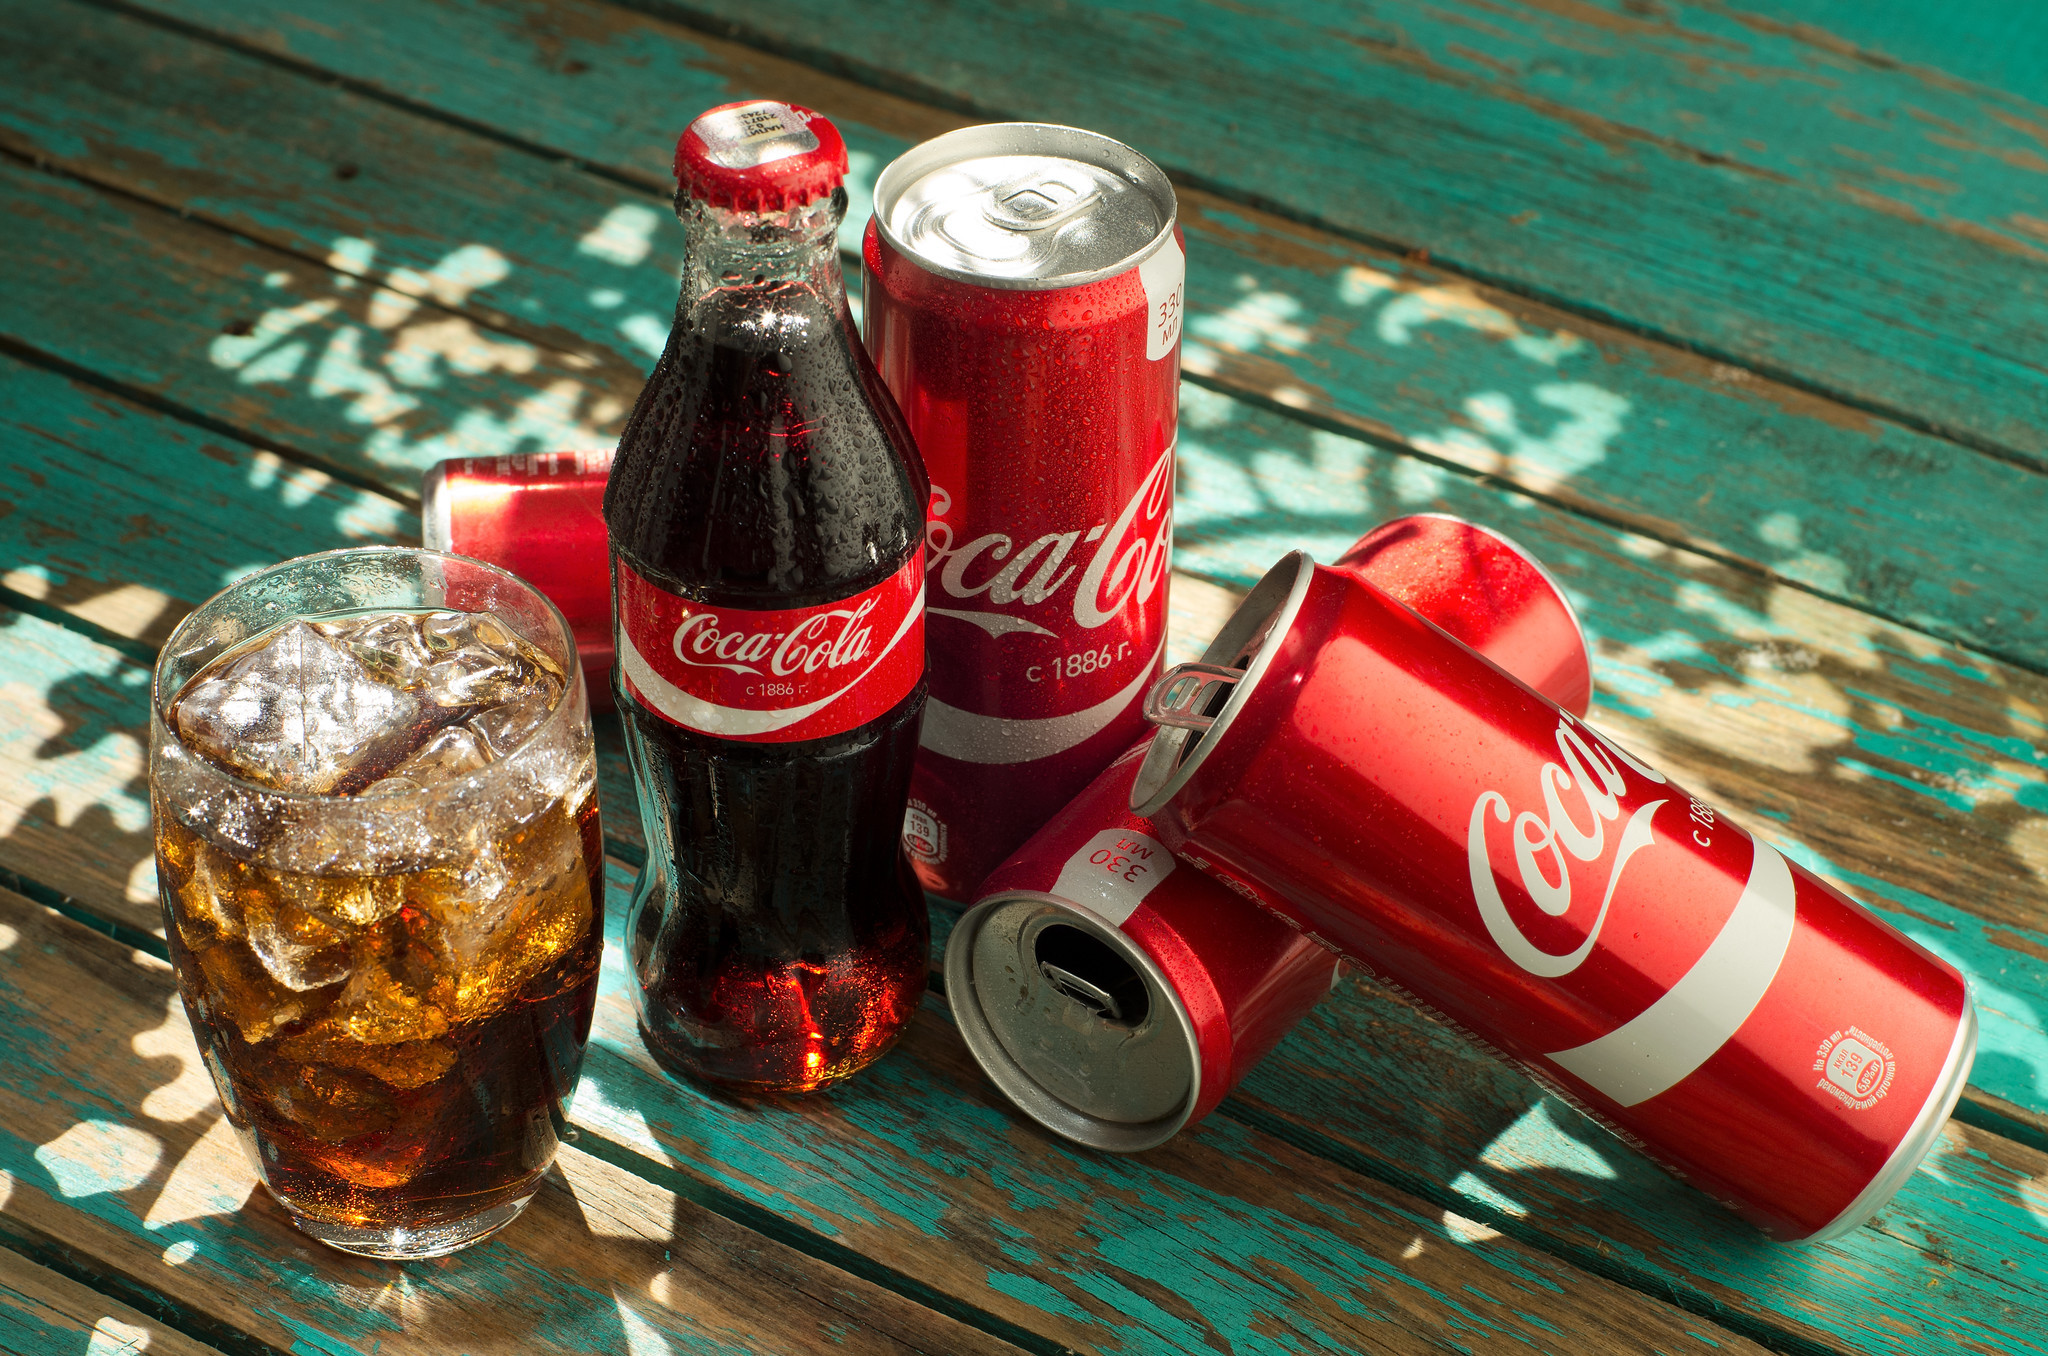 coca cola creates beverage pairing meal kits with chef 39 d baltimore sun. Black Bedroom Furniture Sets. Home Design Ideas